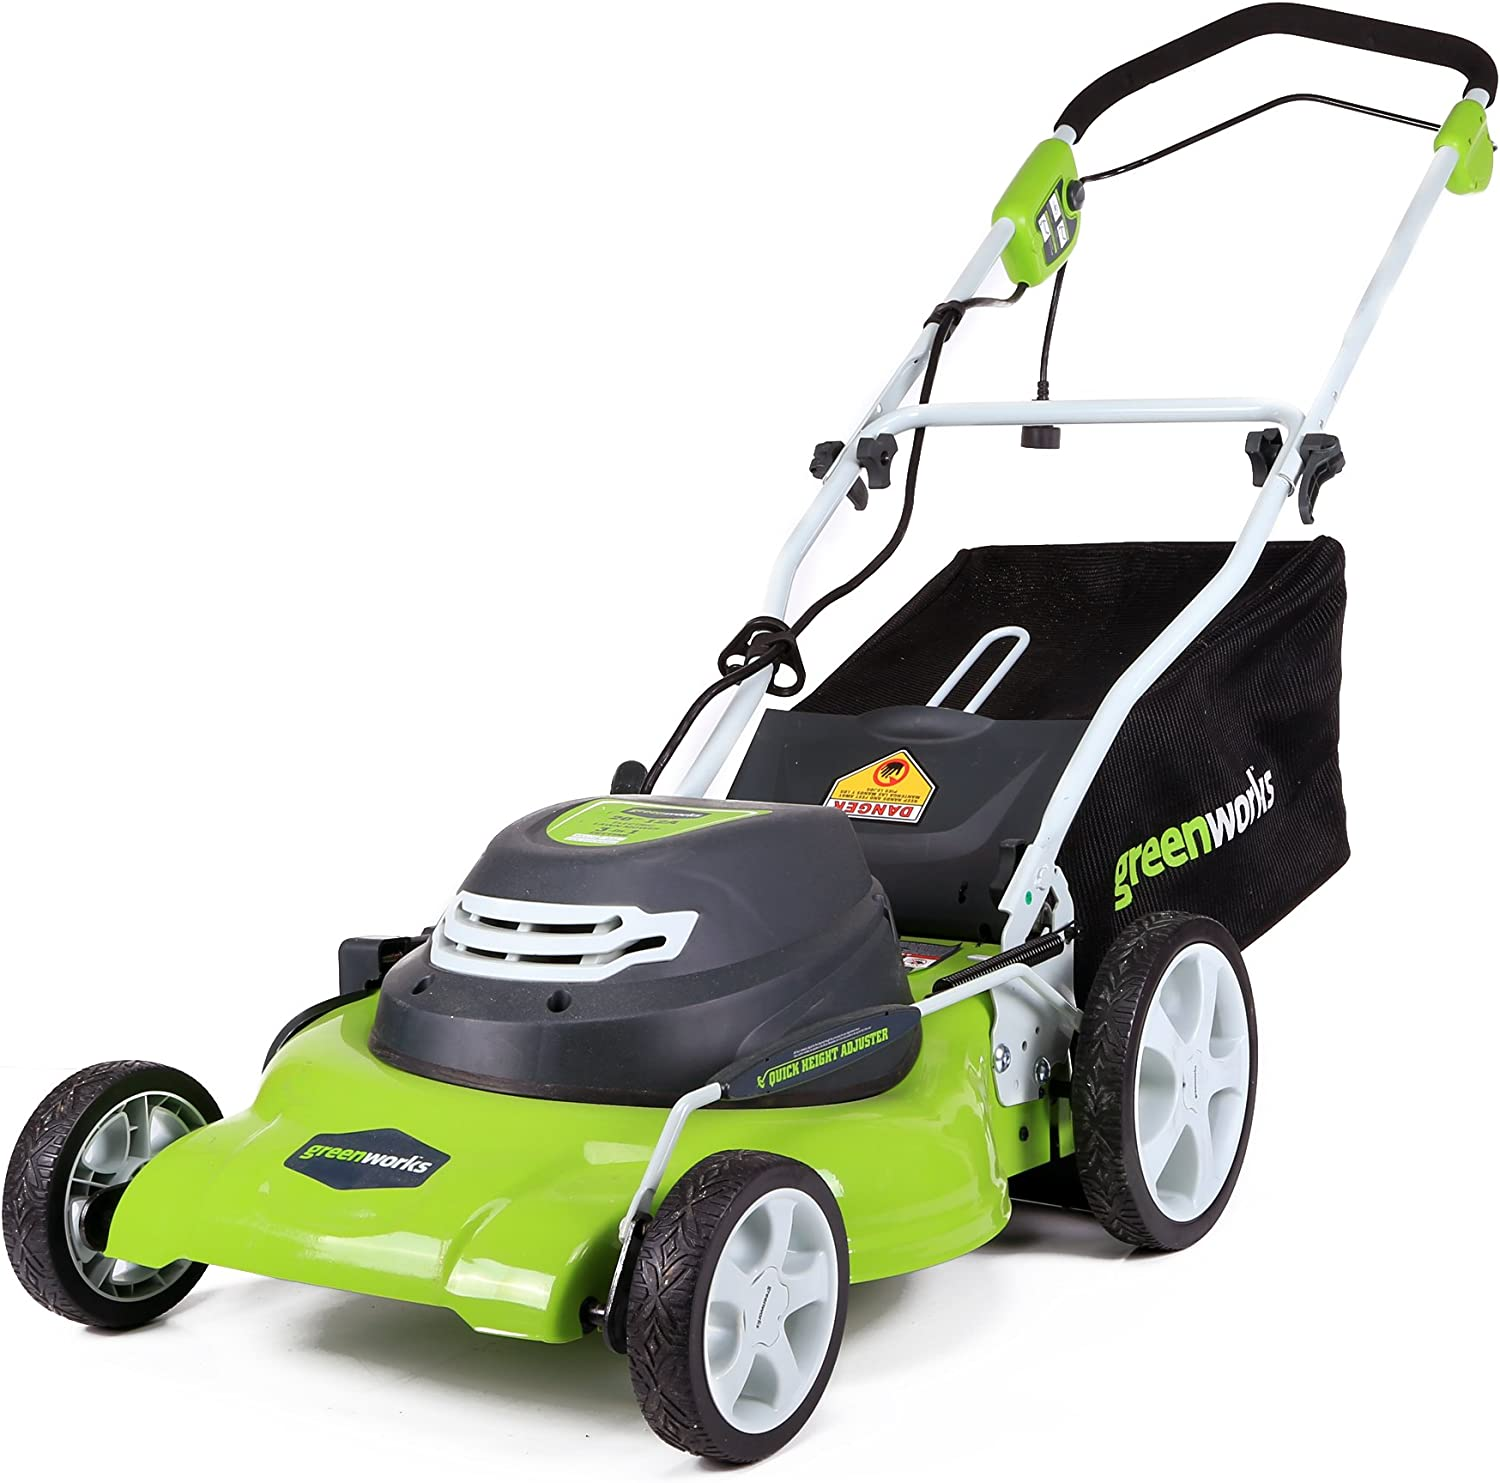 Greenworks 25022 Electric Corded Lawn Mower